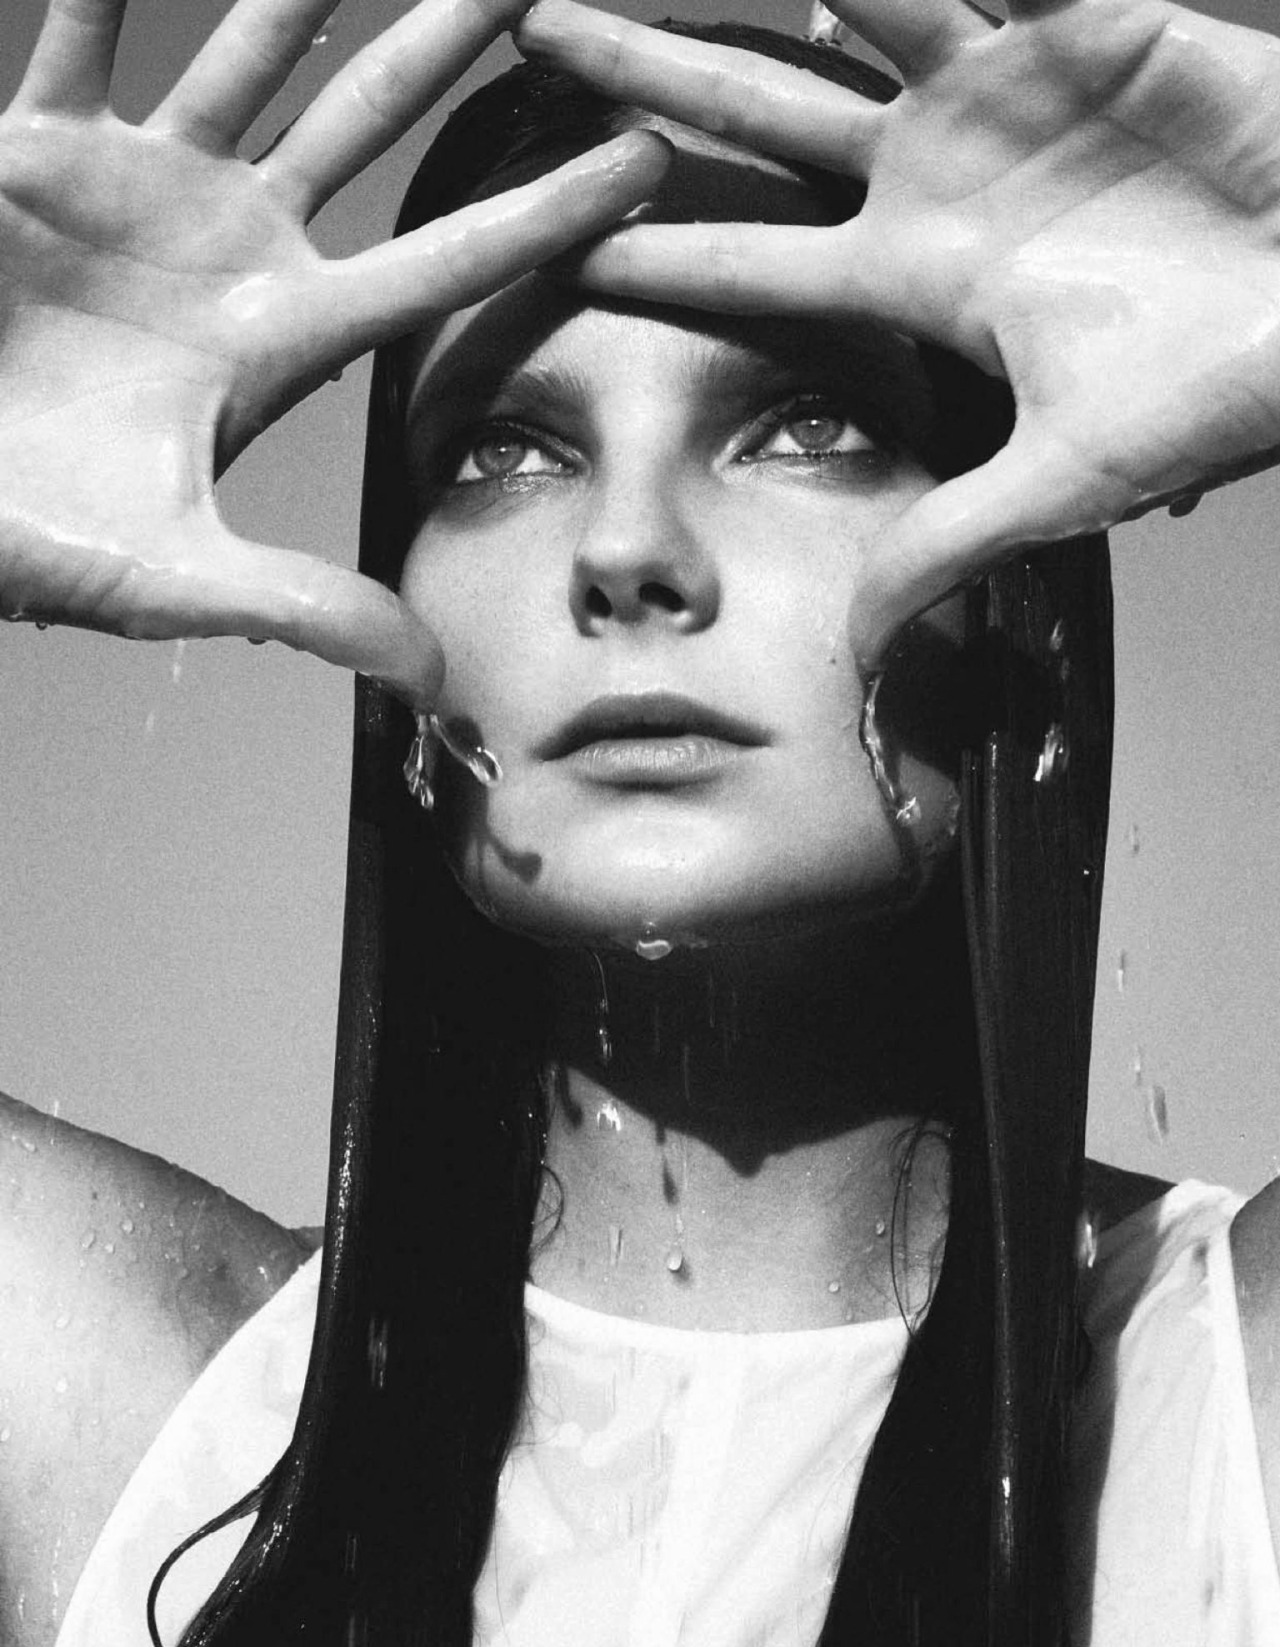 'Naïade' Eniko Mihalik photographed by Sofia Sanchez & Mauro Mongiello for Numero #130, February 2012